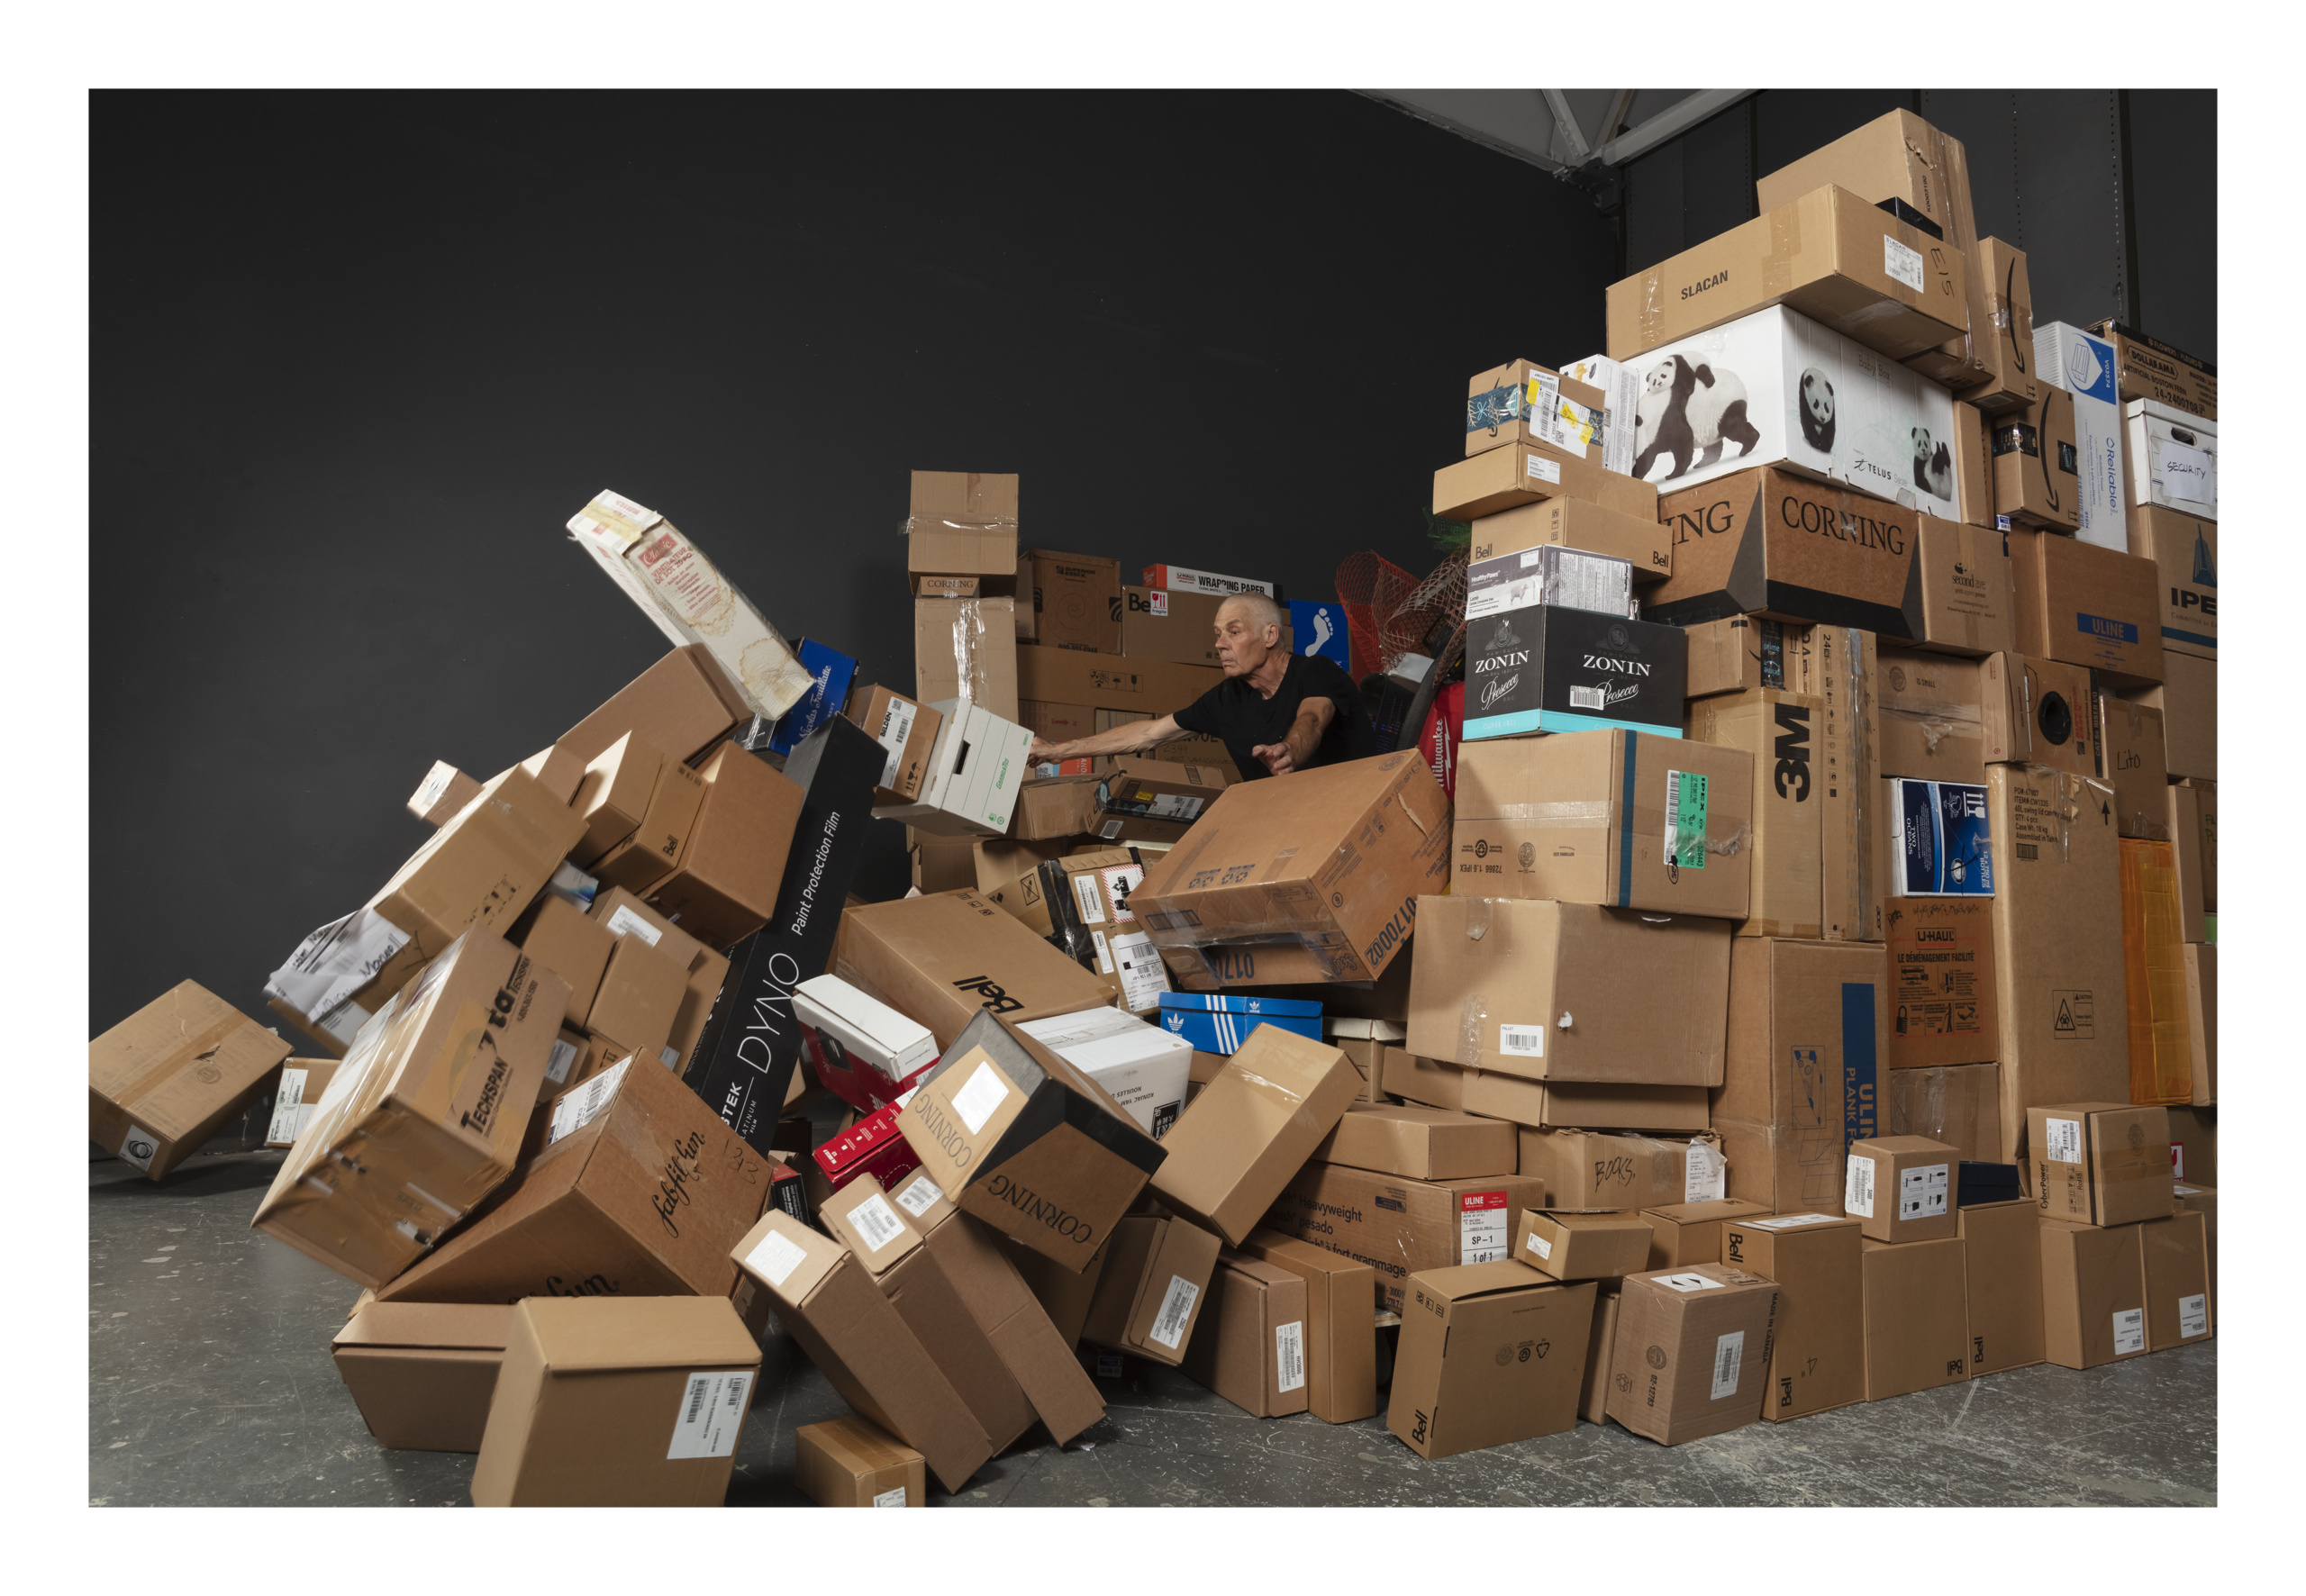 Max Dean, Toppling the Box Room, 2020. © Max Dean / courtesy Stephen Bulger Gallery